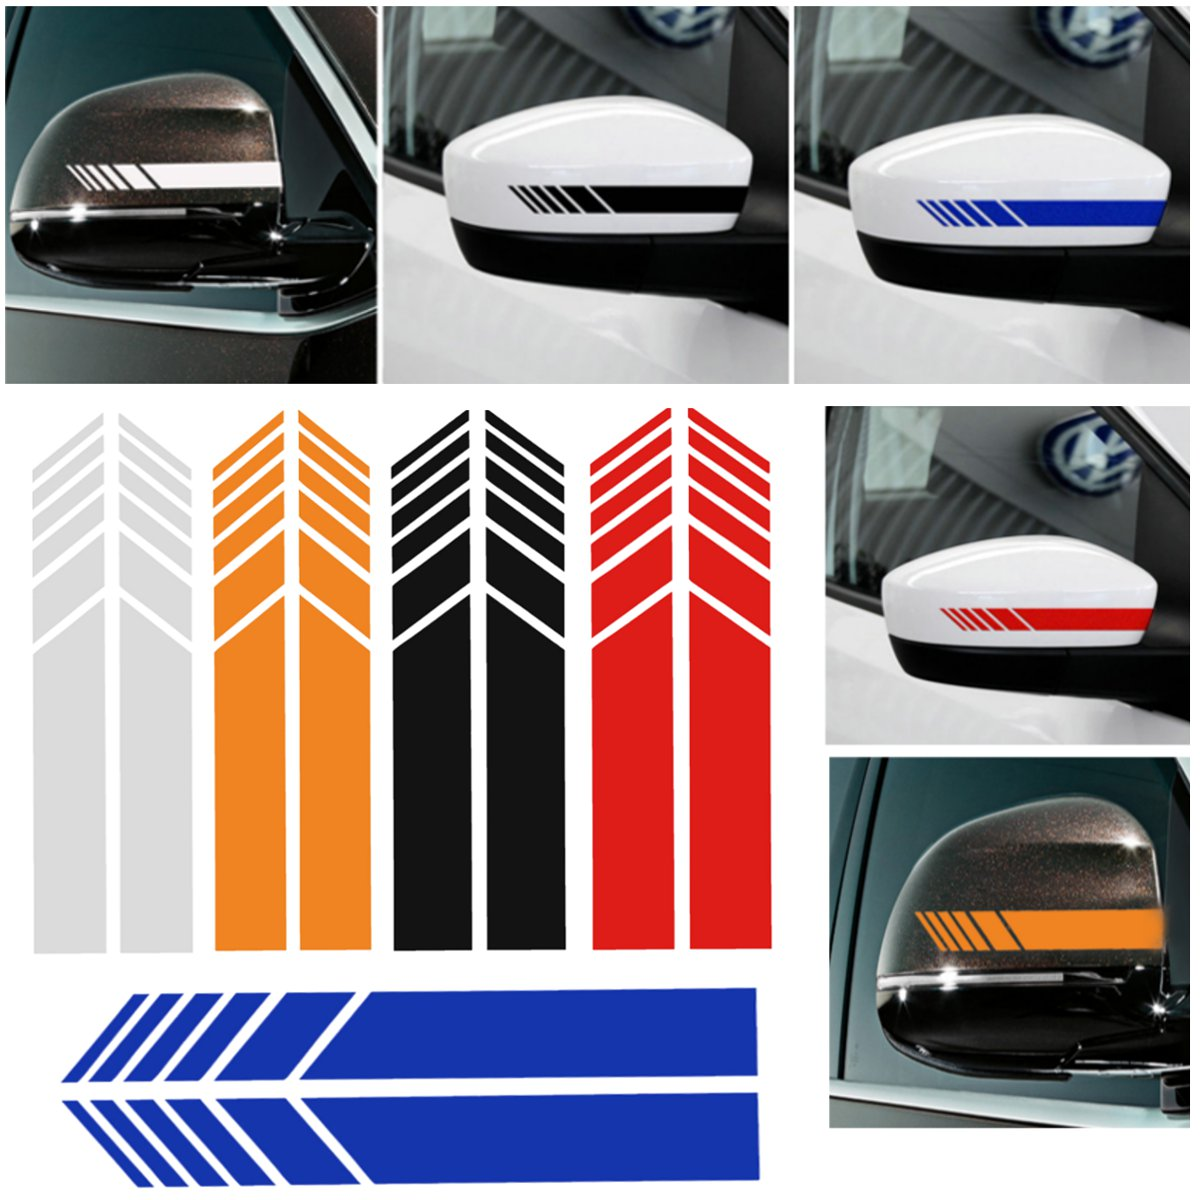 2pcs Car Rear View Mirror Cover Stickers Vinyl Stripe Decal Emblem KK for Mercedes